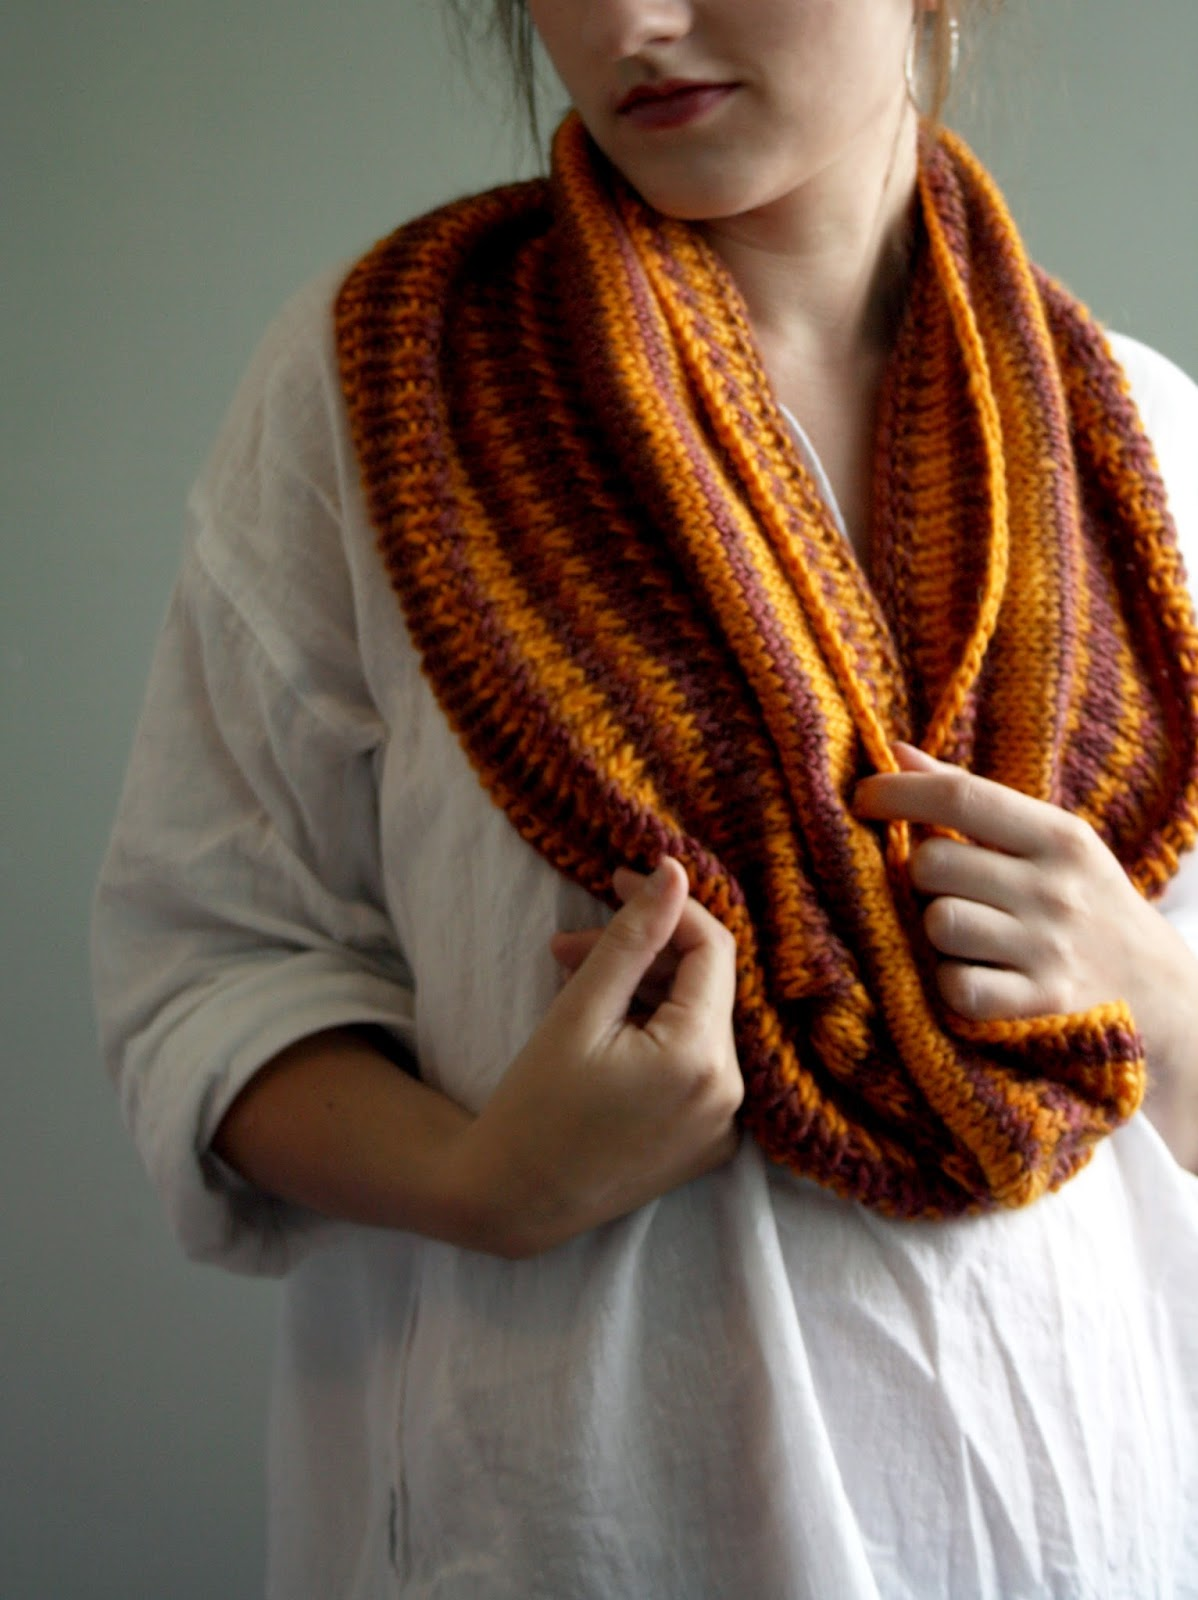 https://www.etsy.com/au/listing/187567538/ready-to-ship-wool-cowl-shawl-scarf-in?ref=shop_home_active_9